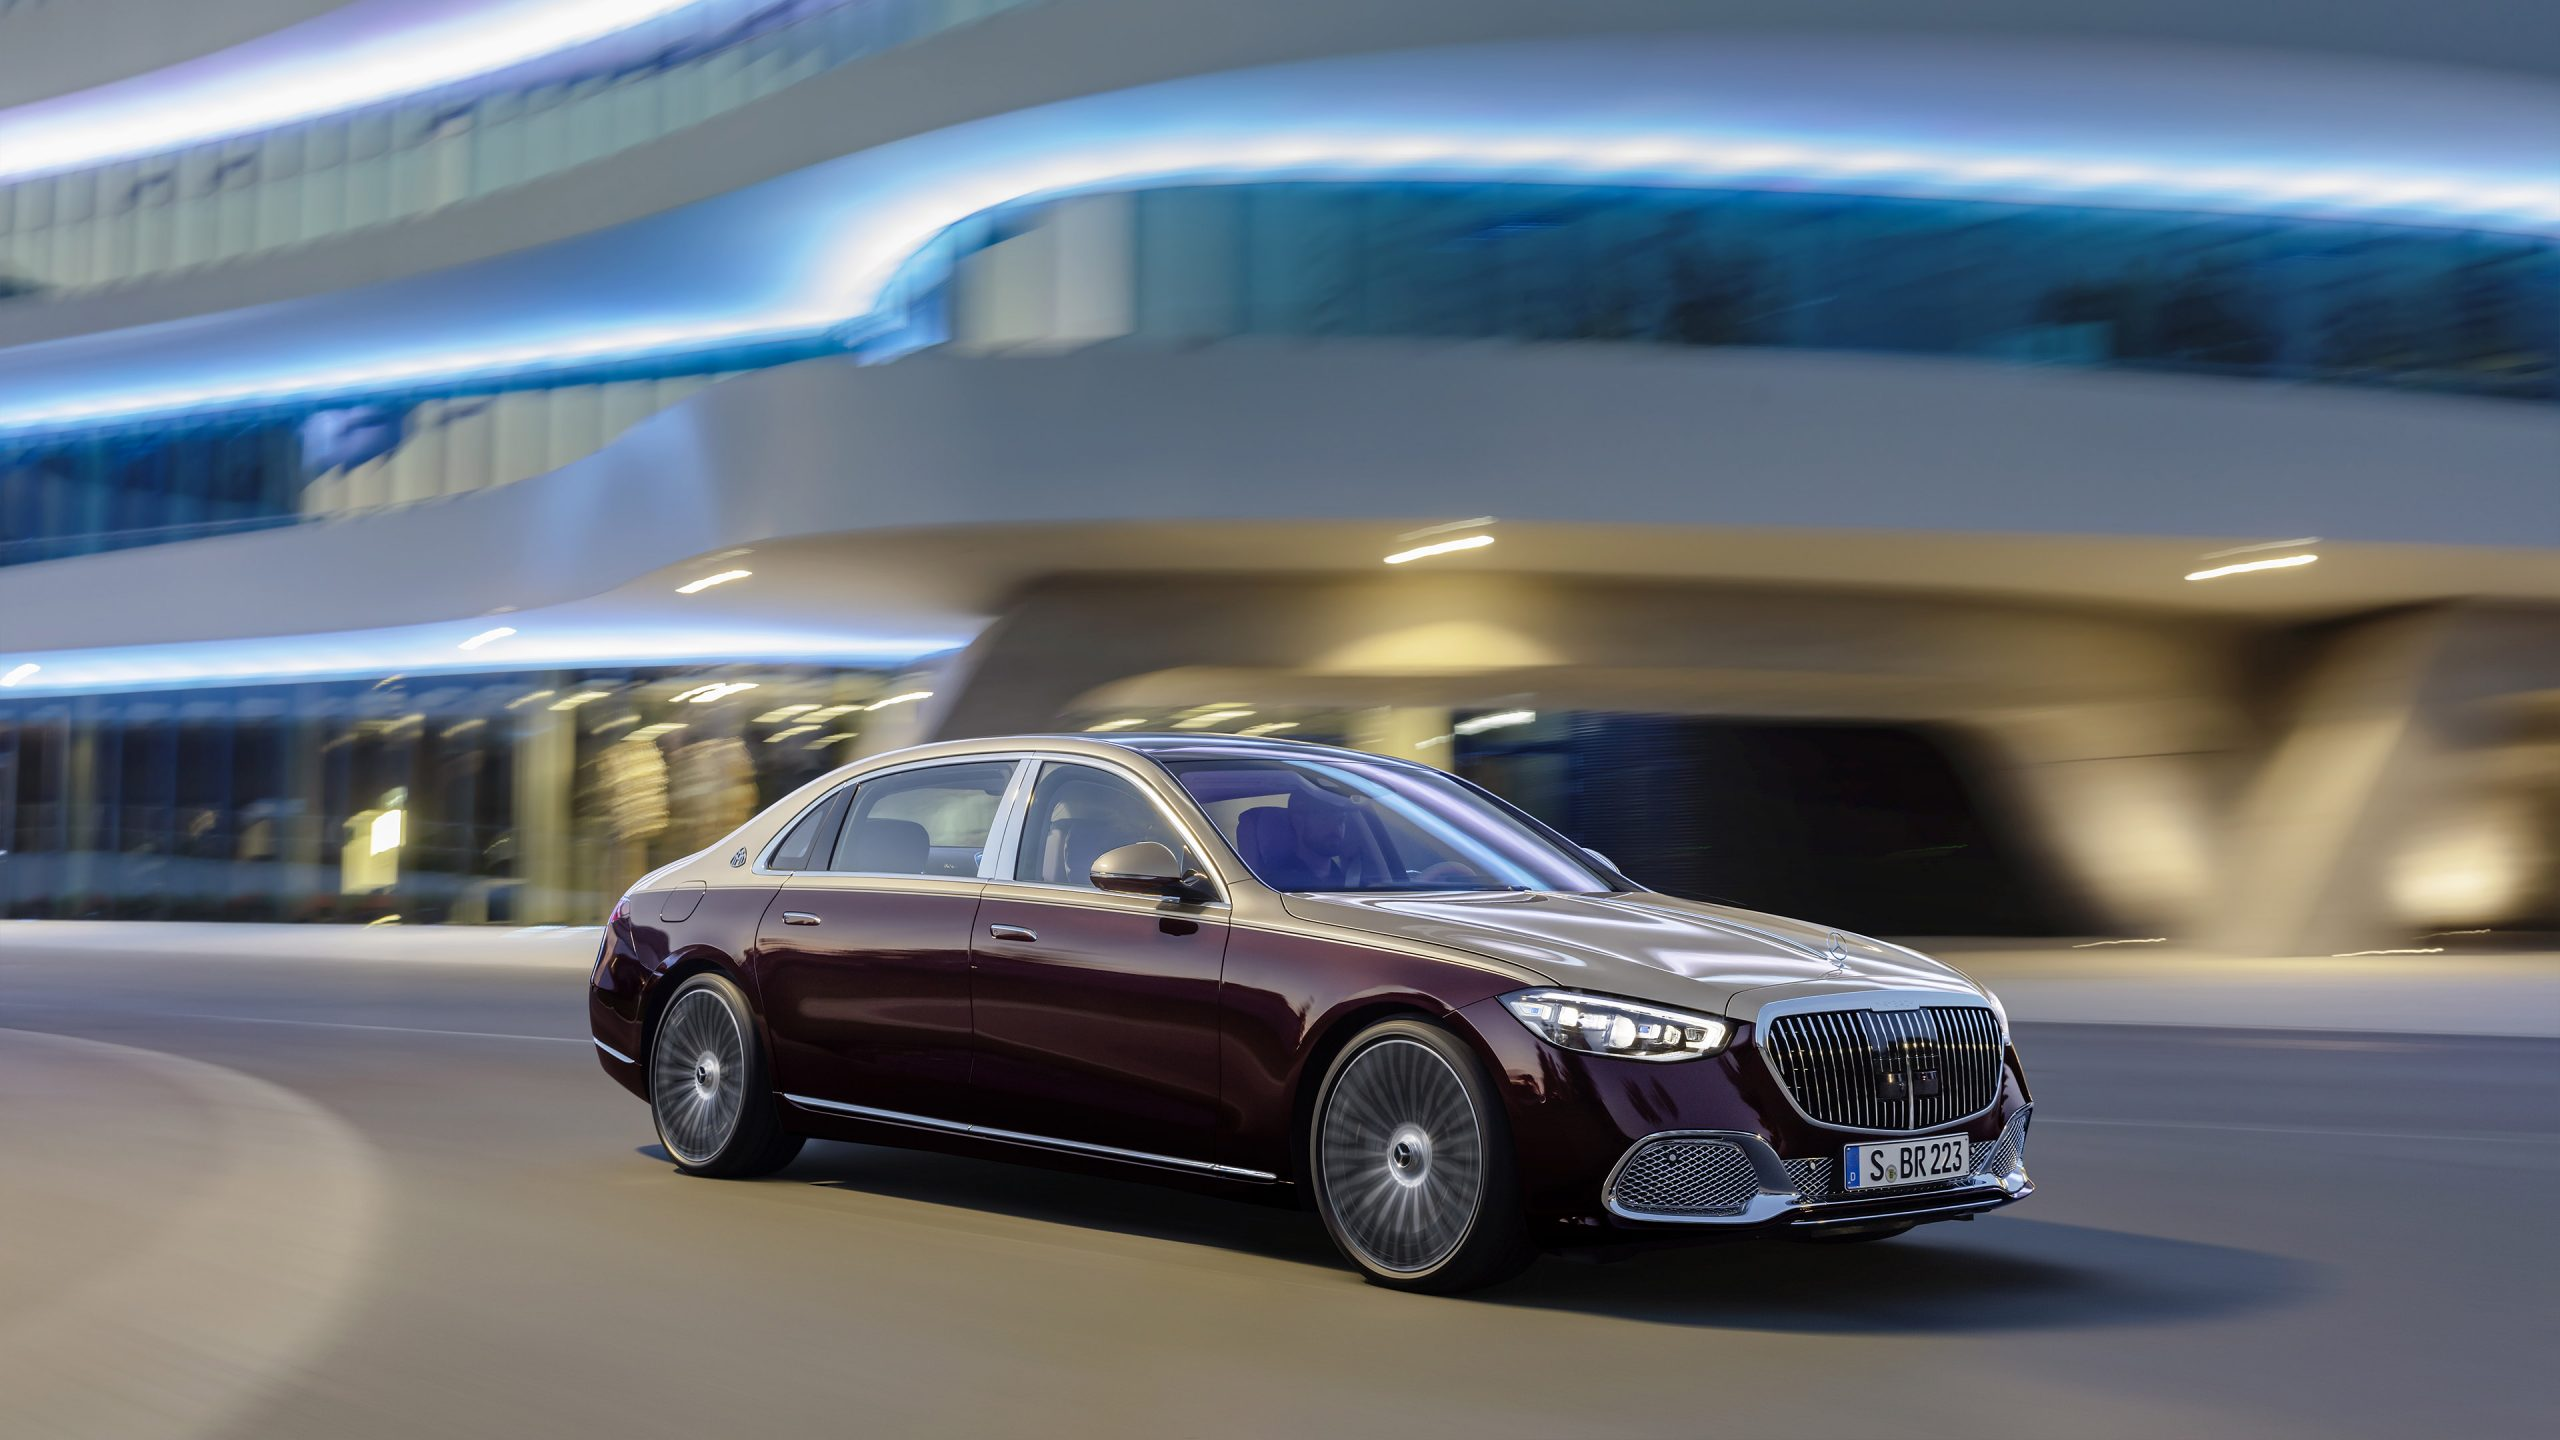 2021 Mercedes Maybach S580 Wallpapers SuperCarsnet 2560x1440